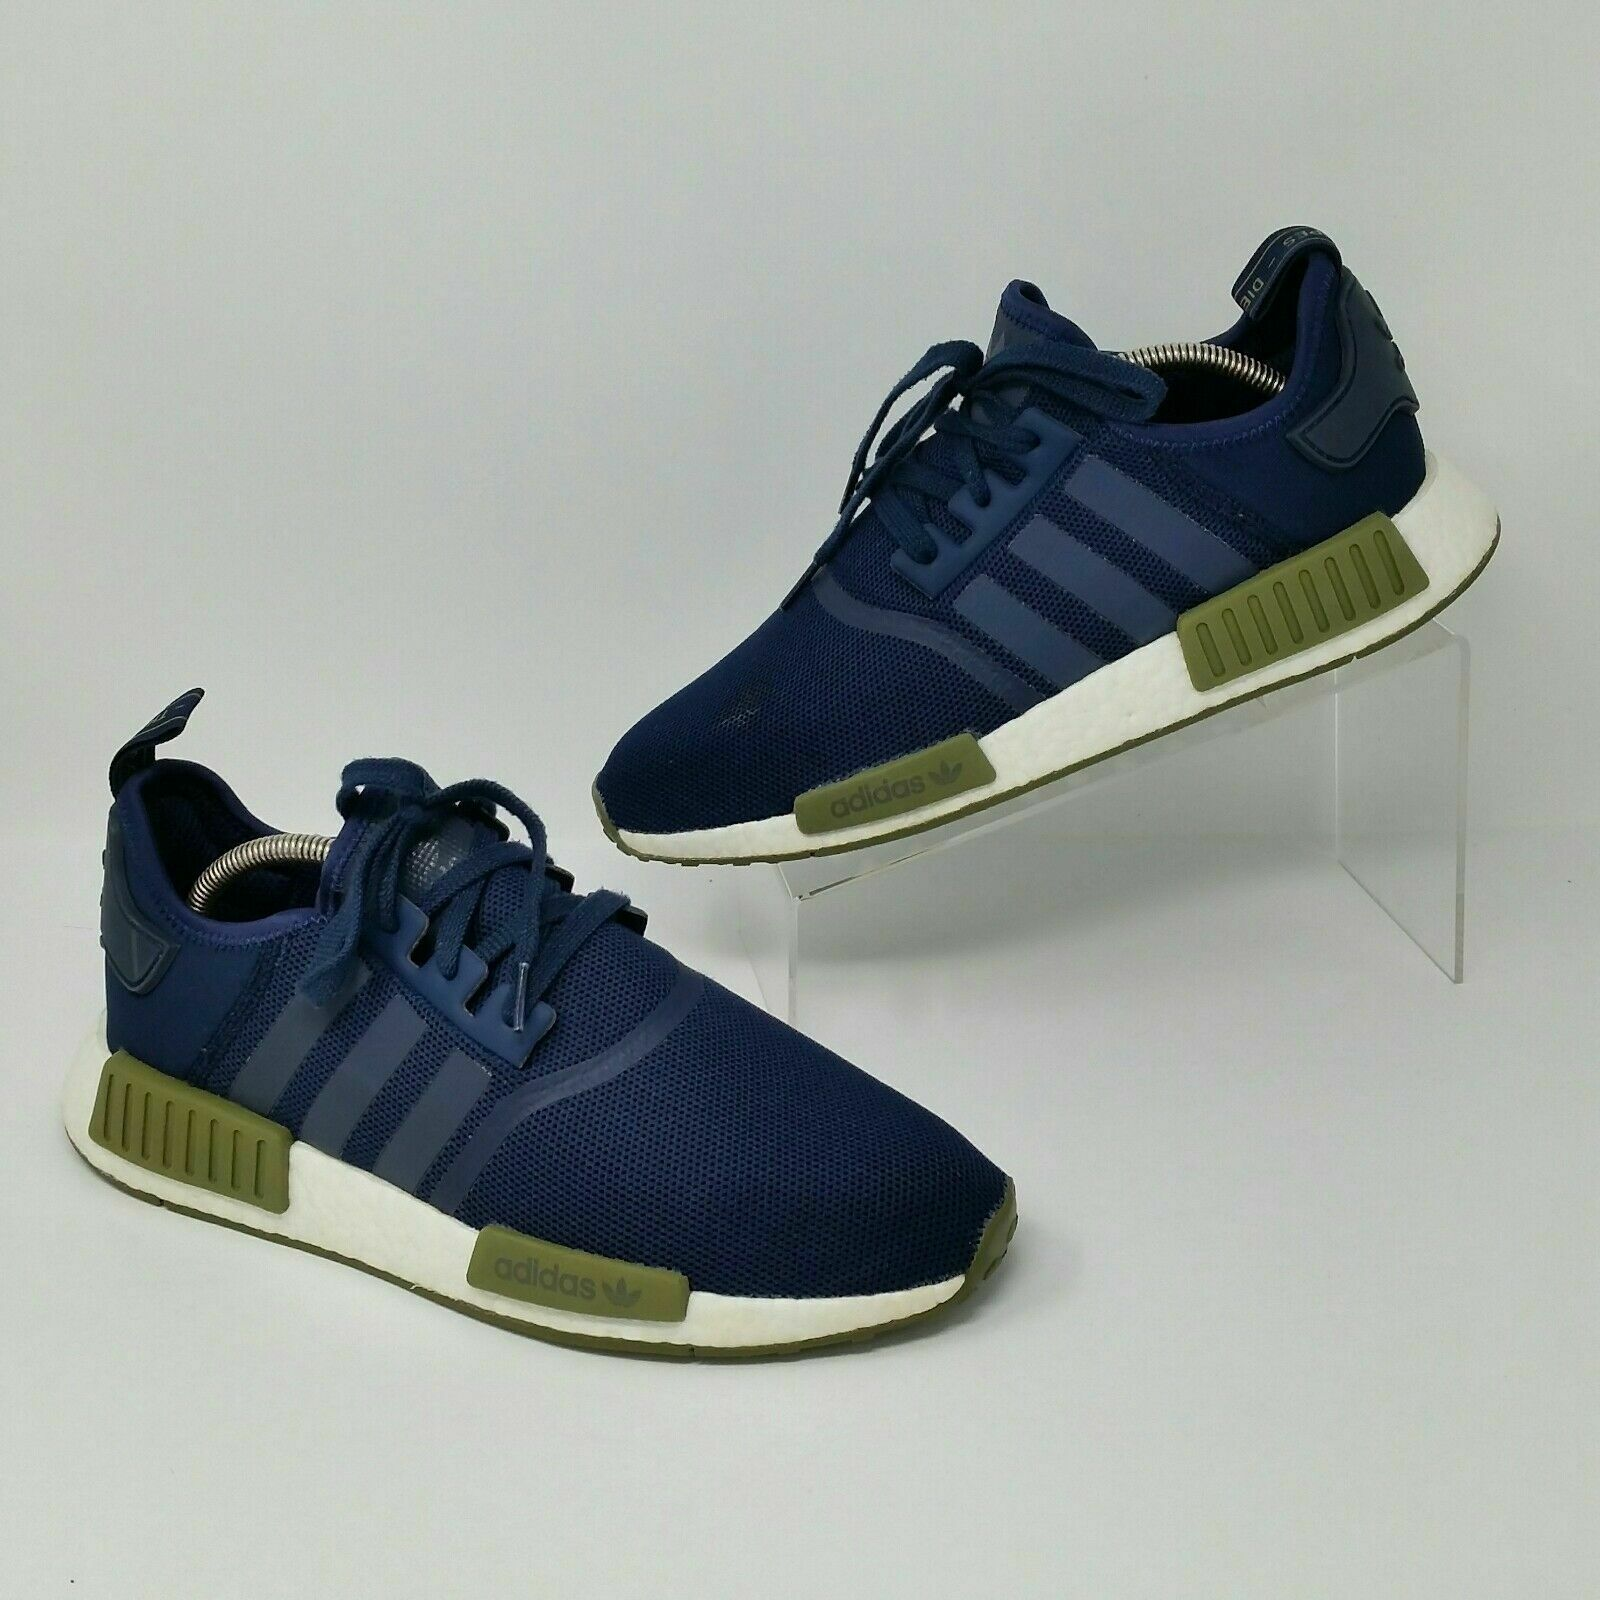 Adidas NMD R1 (Men's Size 11) Athletic Athletic Athletic Training Sneaker shoes Navy bluee Olive 5c40fa